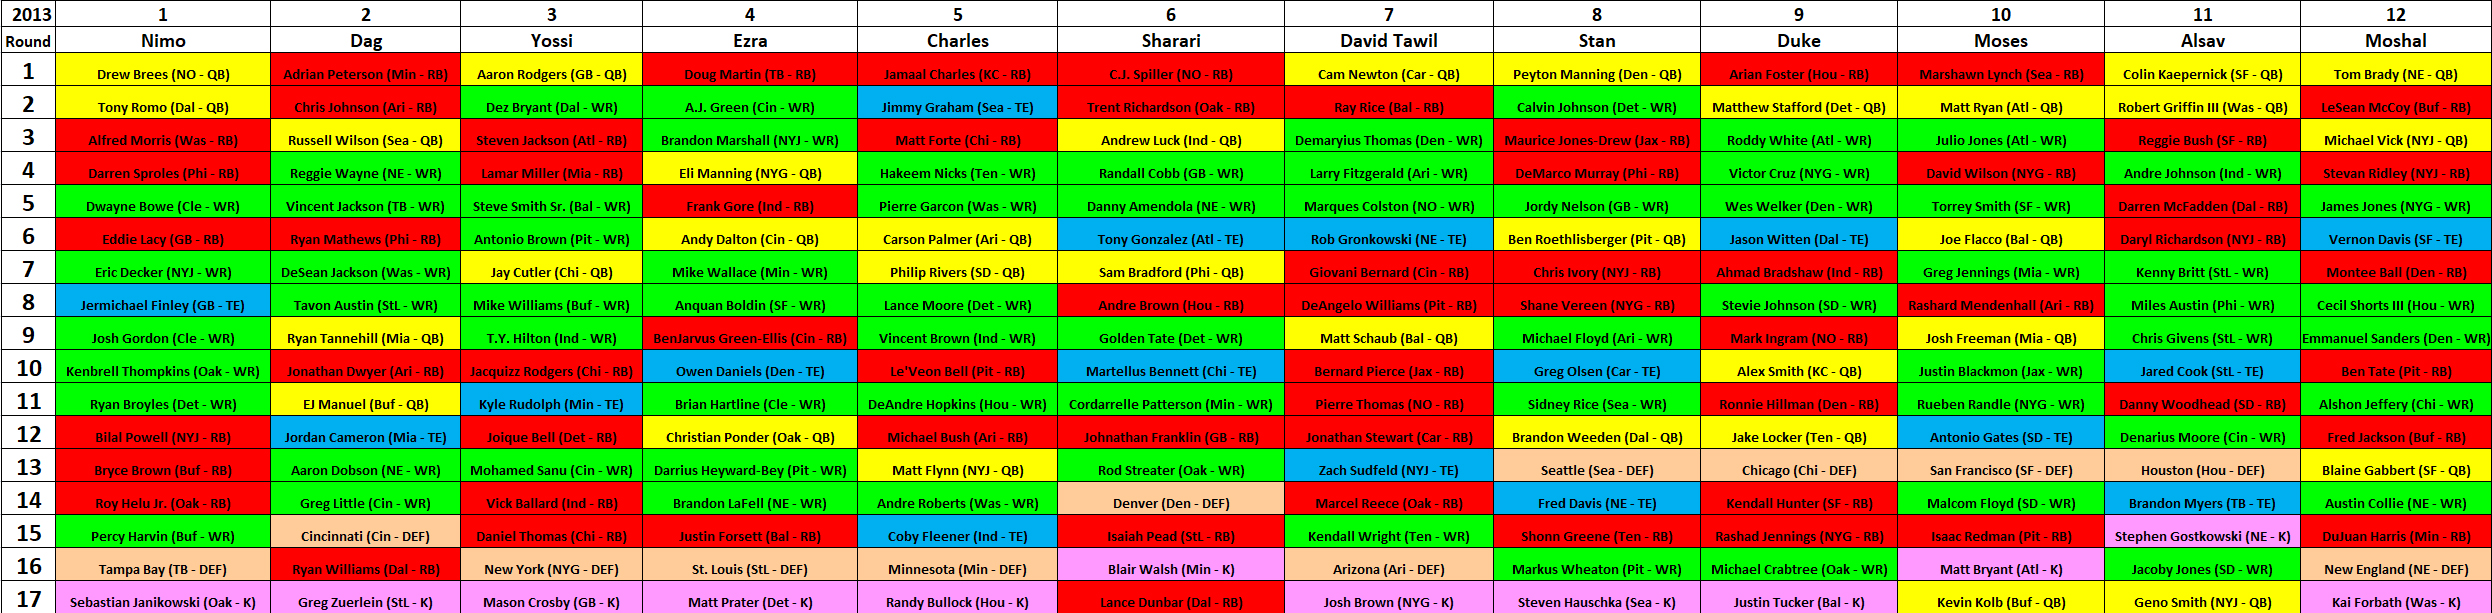 2013 MAZZA LEAGUE DRAFT BOARD – YEAR 8